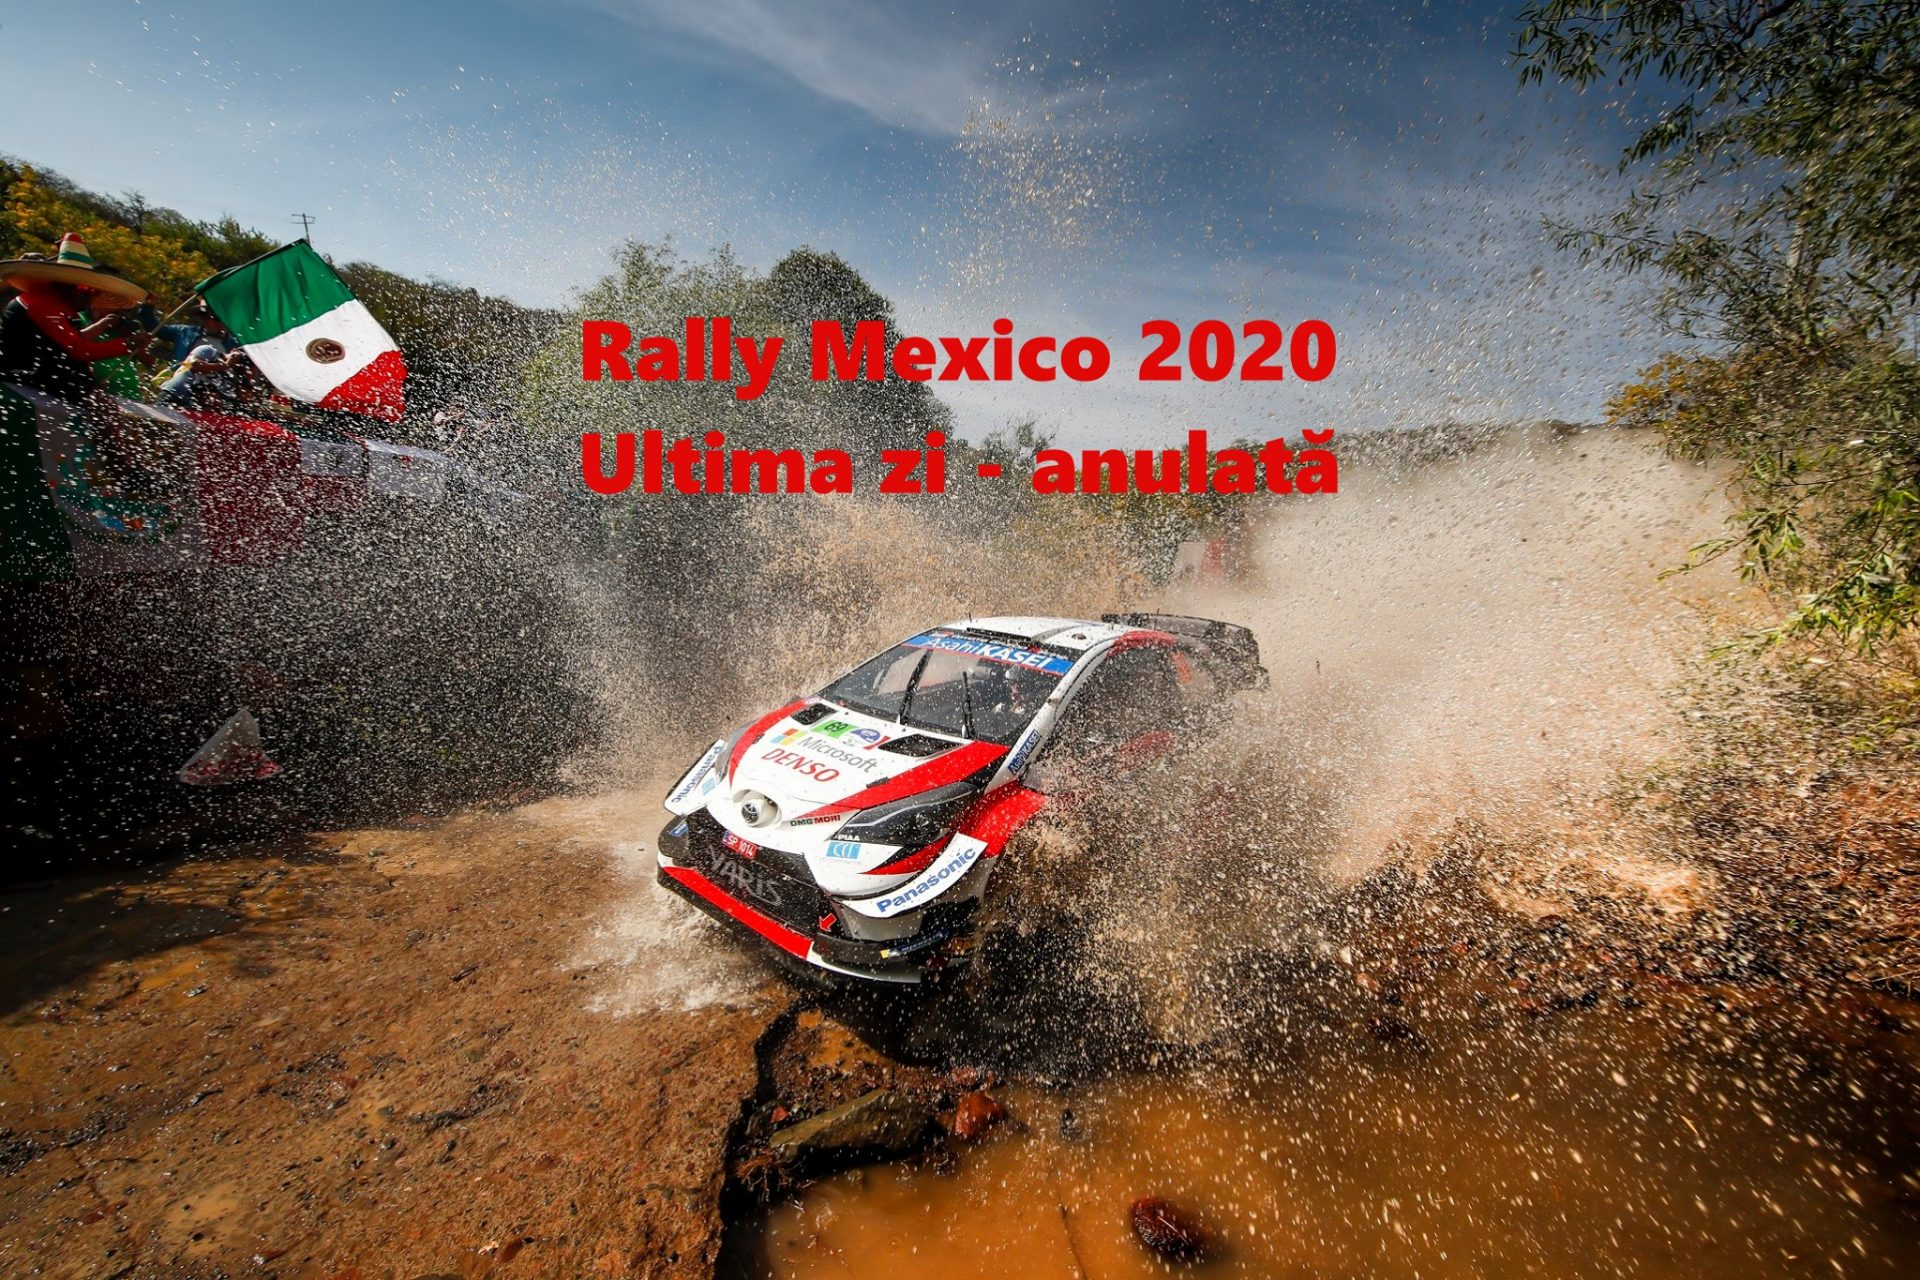 Ultima zi a Rally Mexico 2020 – anulata